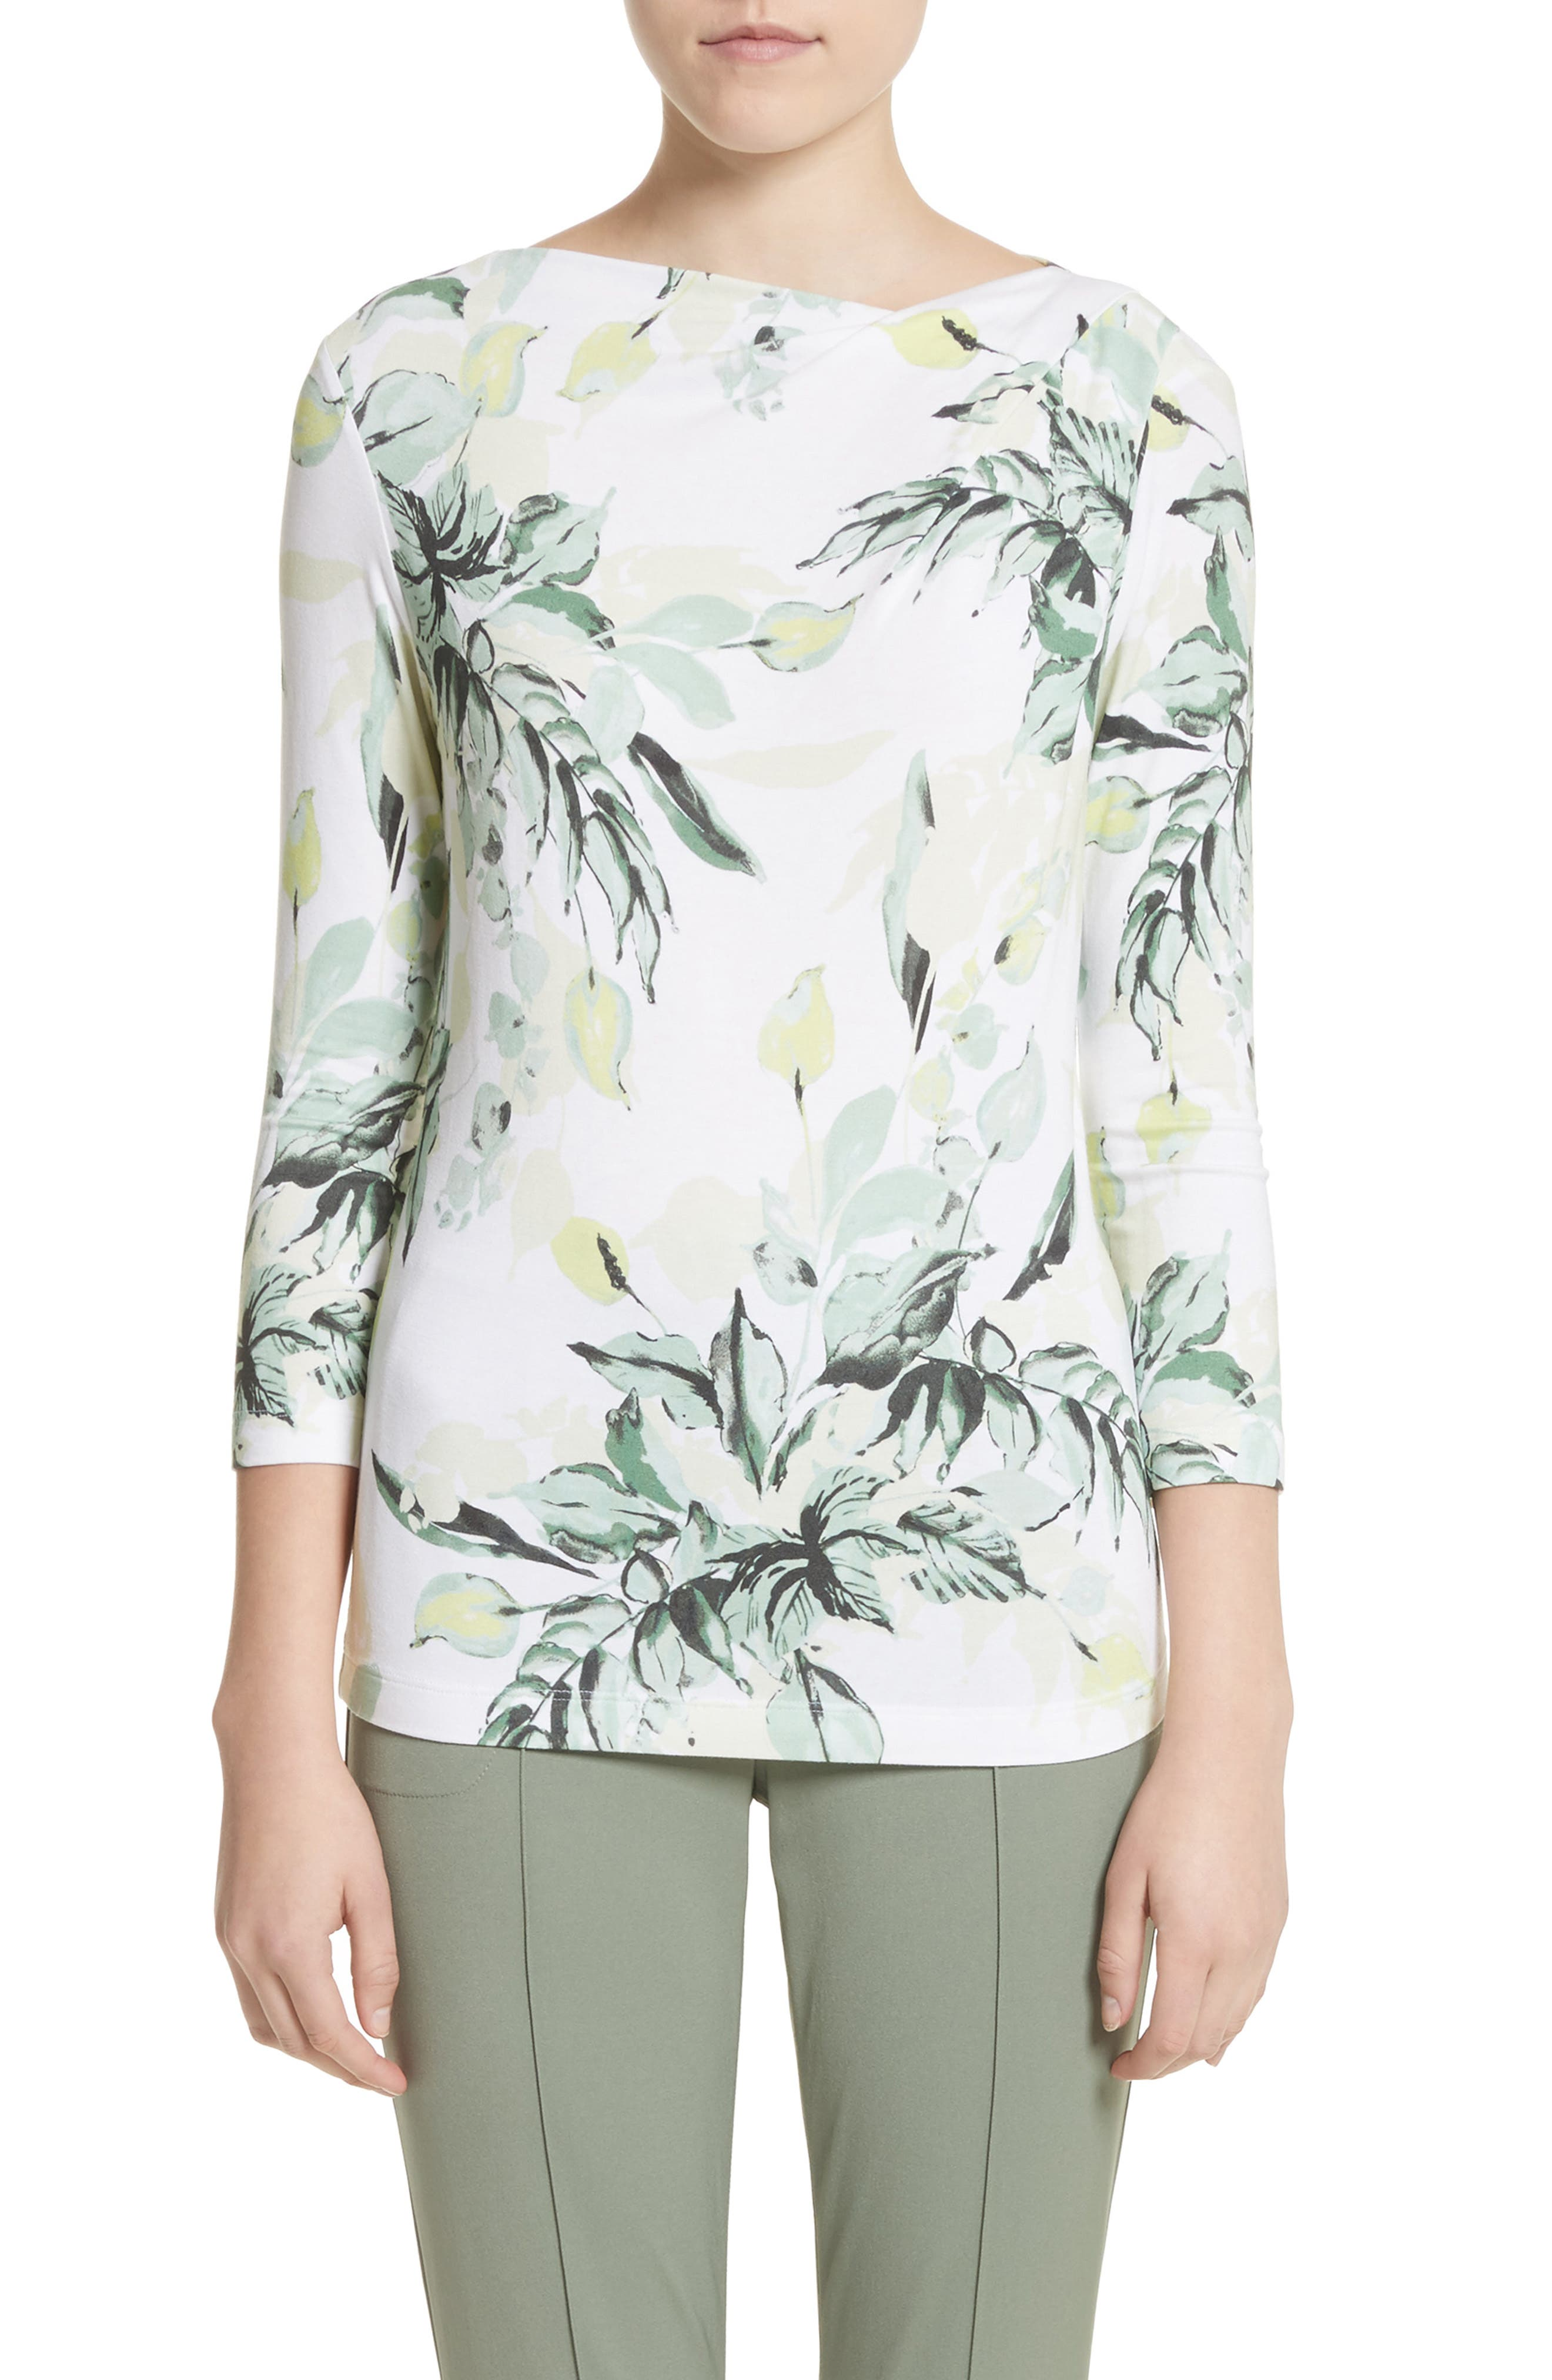 Painted Leaves Print Jersey Top,                             Main thumbnail 1, color,                             Bianco Multi